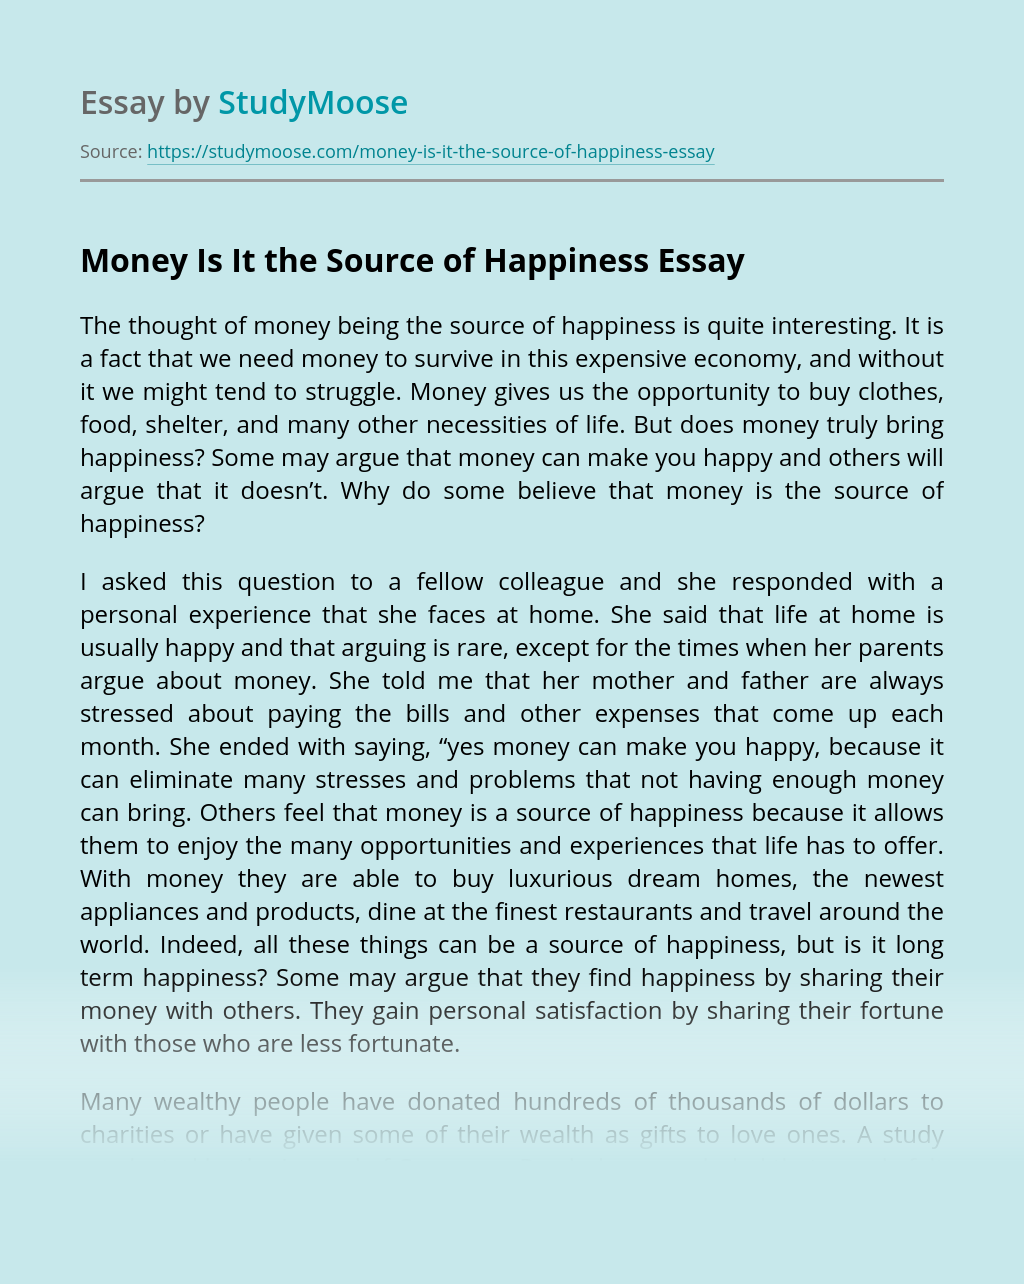 Money Is It the Source of Happiness